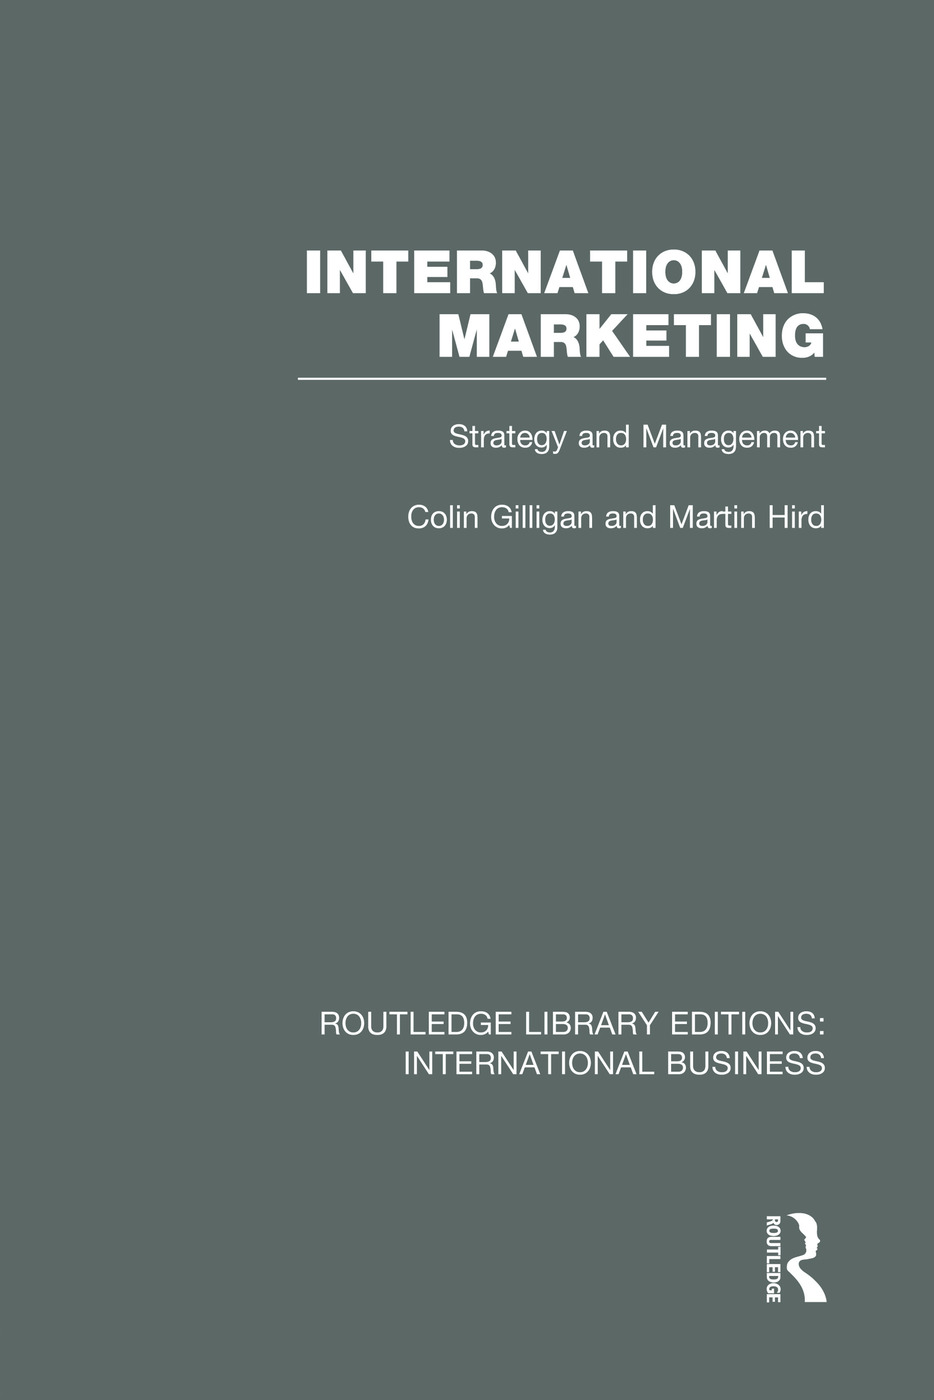 International Marketing (RLE International Business): Strategy and Management, 1st Edition (Paperback) book cover